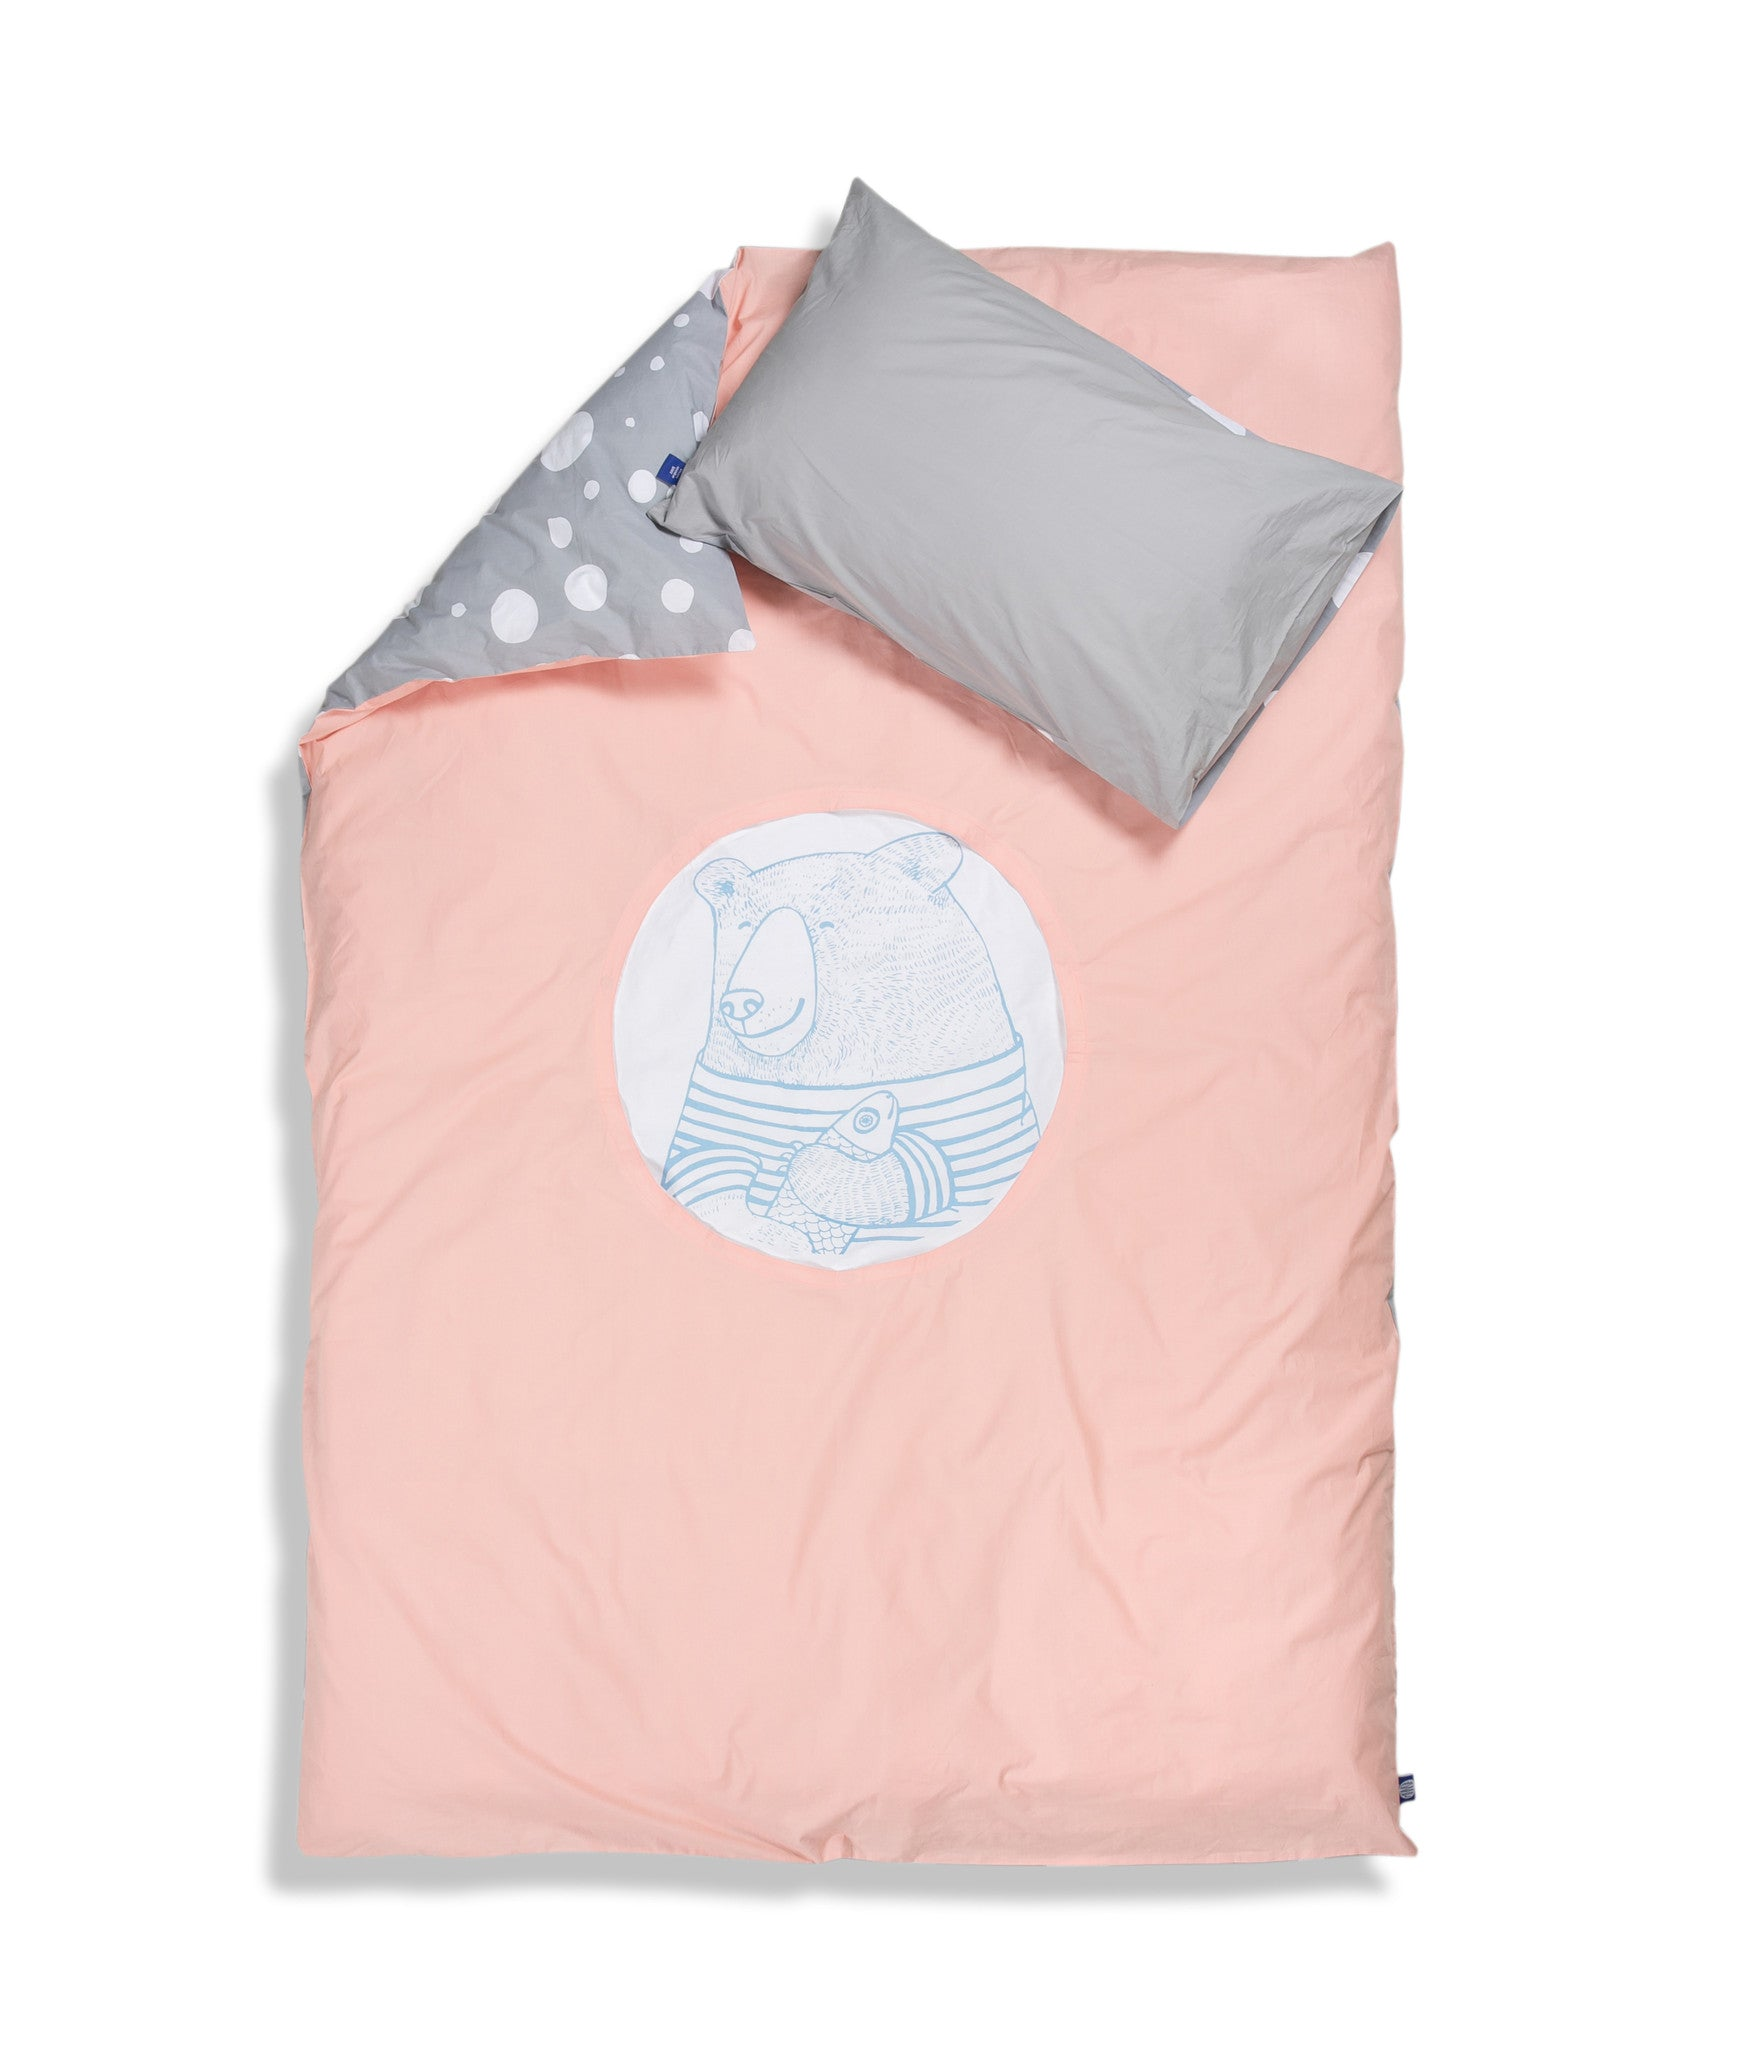 Organic cotton single bed set. Kids bedding. Grey pillow case and pink duvet cover with bear. Dotted pattern bed linen. Customised bedding.